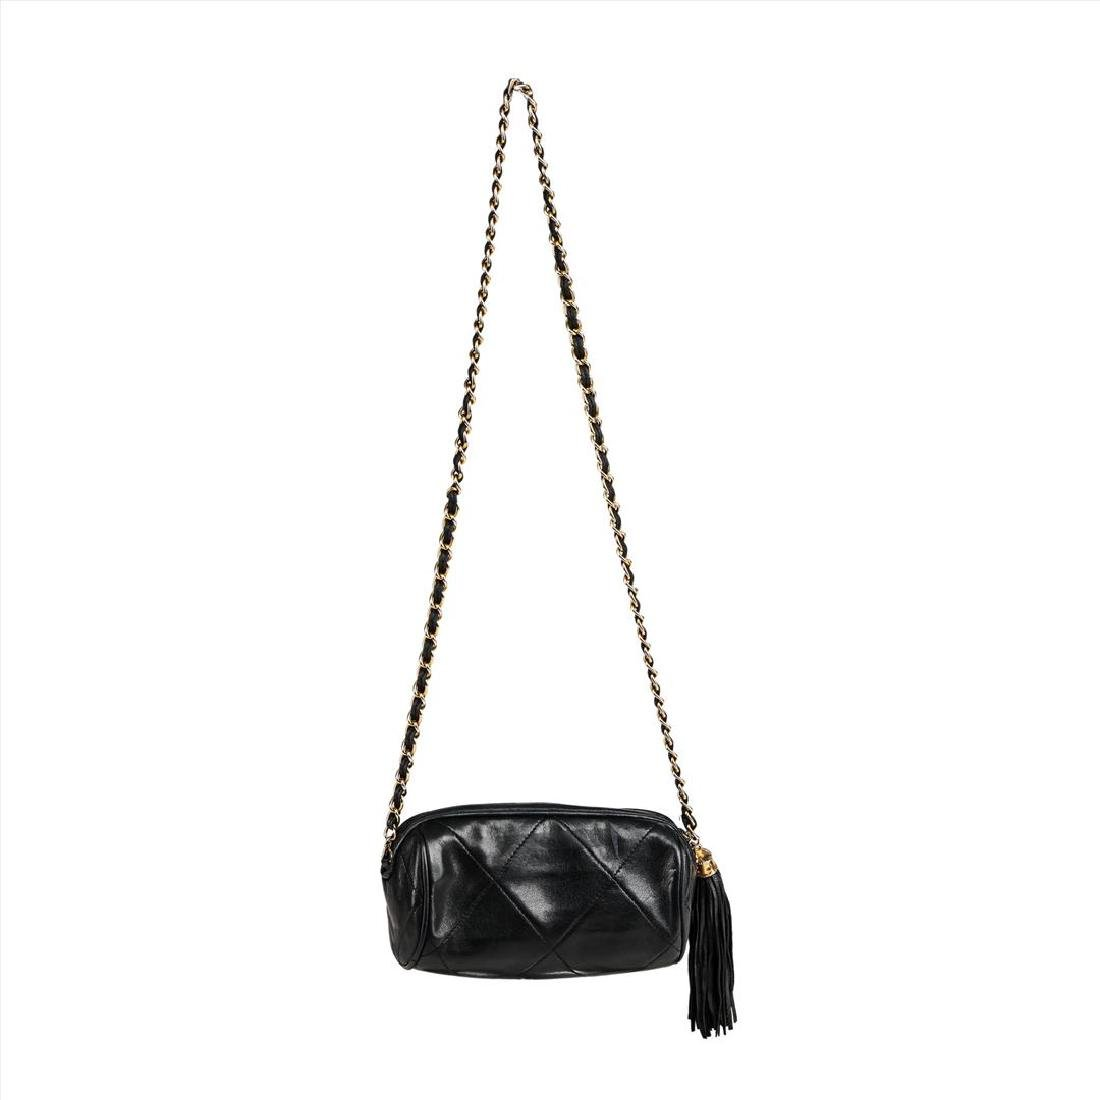 Vintage Chanel Crossbody Evening Bag - 2